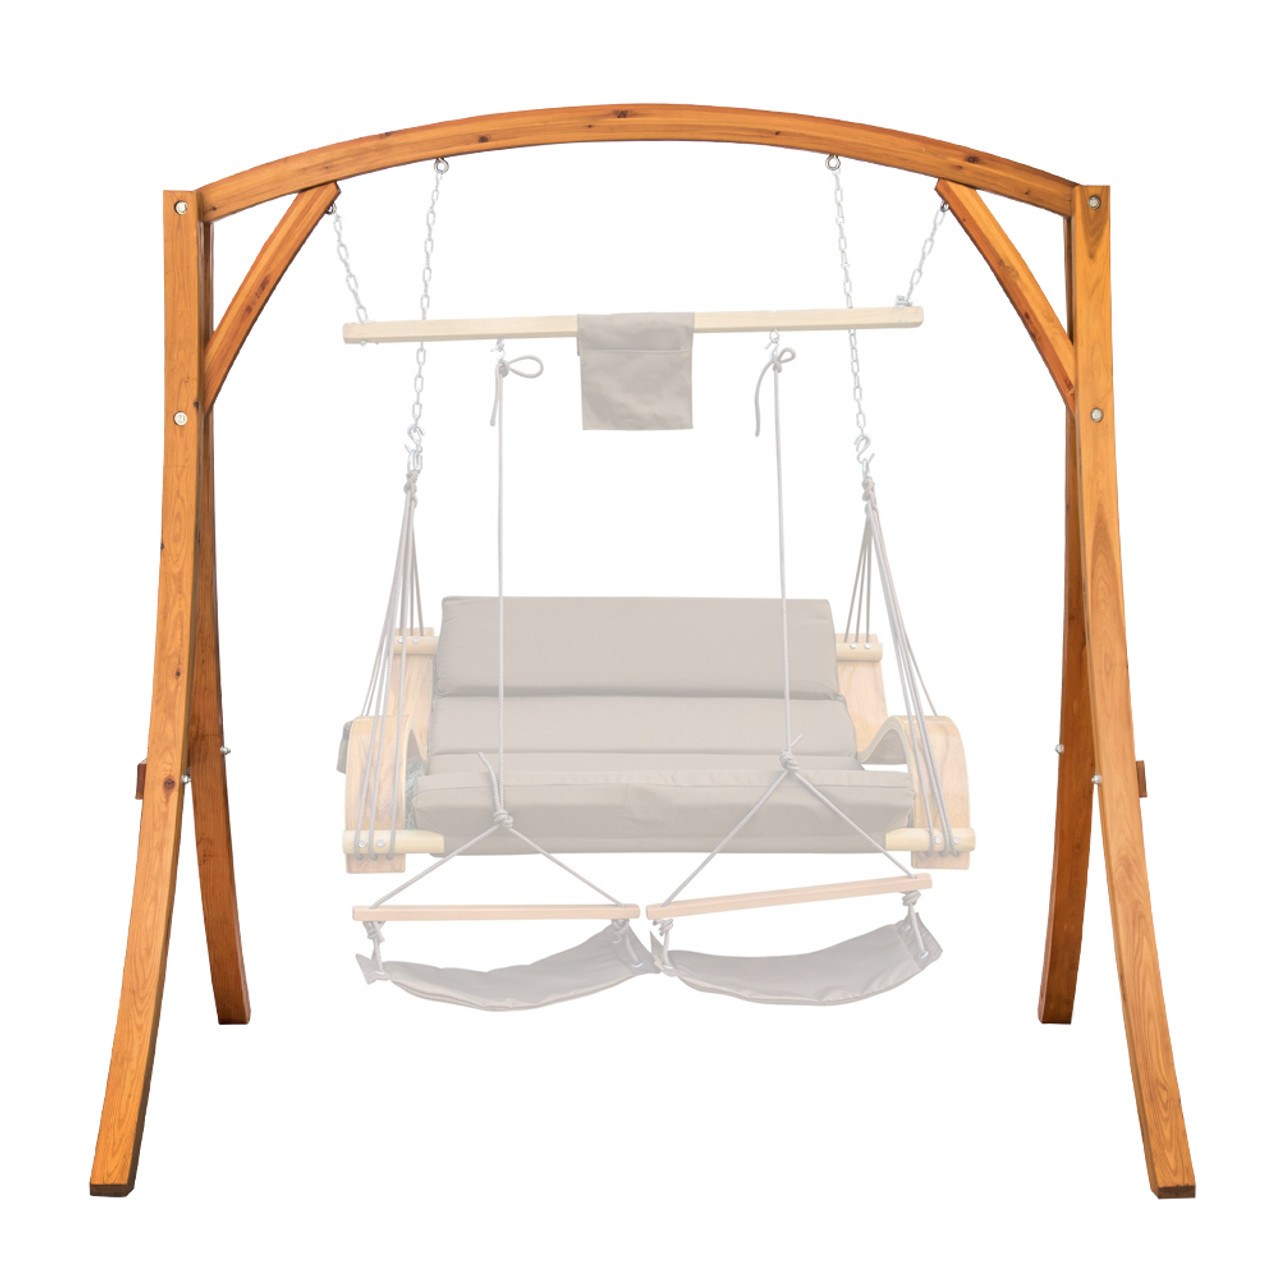 Superbe Lazy Daze Hammocks Deluxe Wooden Arc Frame Hammock Swing Chair Stand Heavy  Duty Russian Pine Hardwood, ...